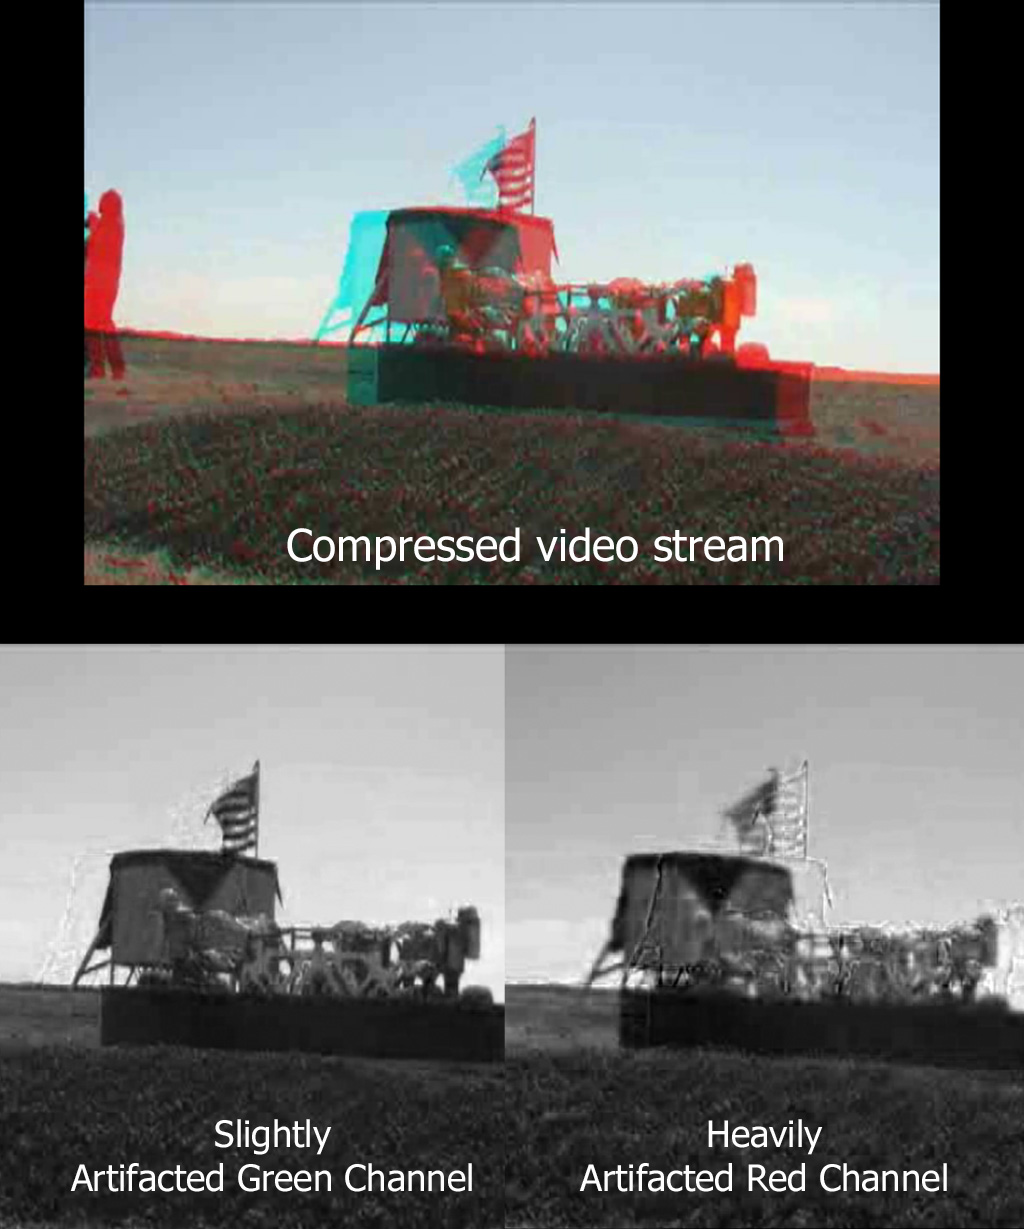 This image from a NASA film, aired on Cable TV with this compression. It is heavily artifacted by the compressor, which cancels out any stereo3D fusion.